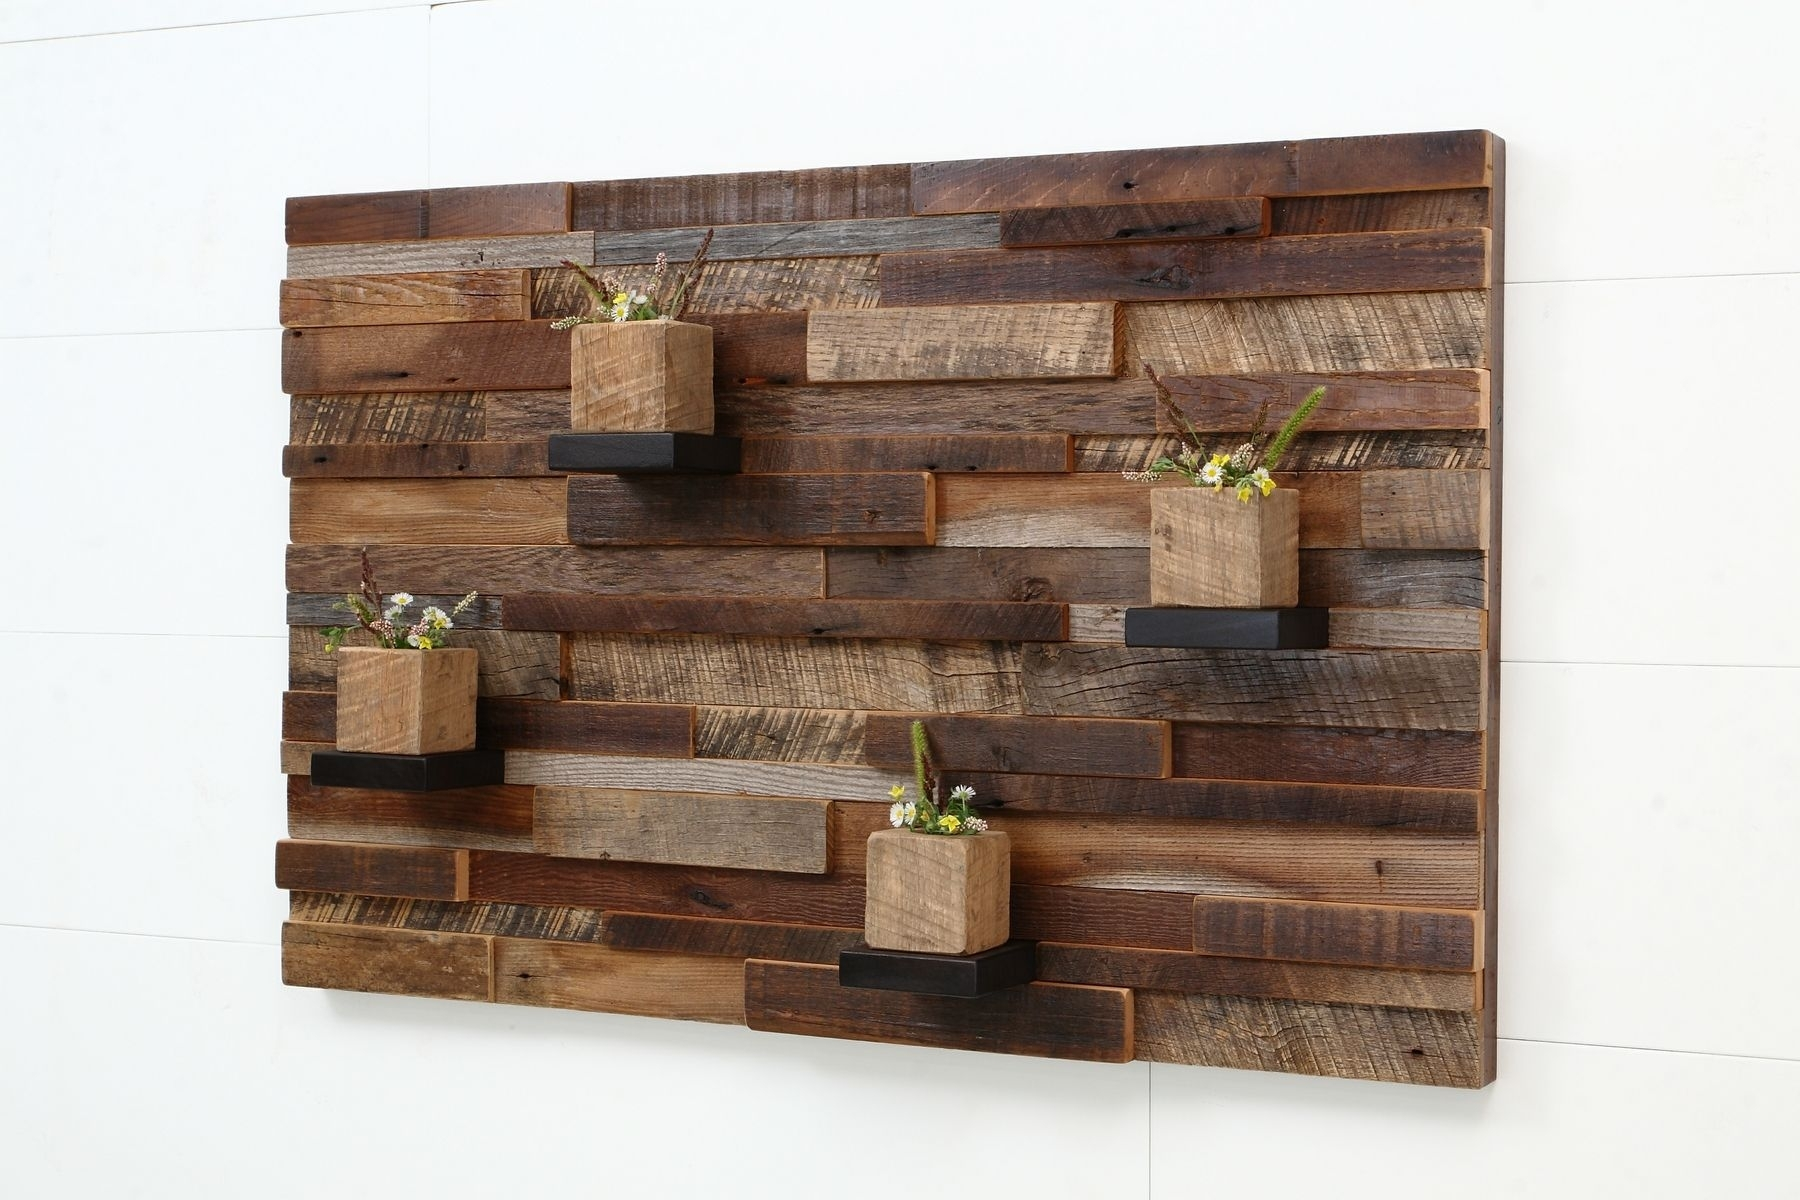 Hand Crafted Reclaimed Wood Wall Art Made Of Old Barnwood. Inside Most Recent Reclaimed Wood Wall Art (Gallery 1 of 15)